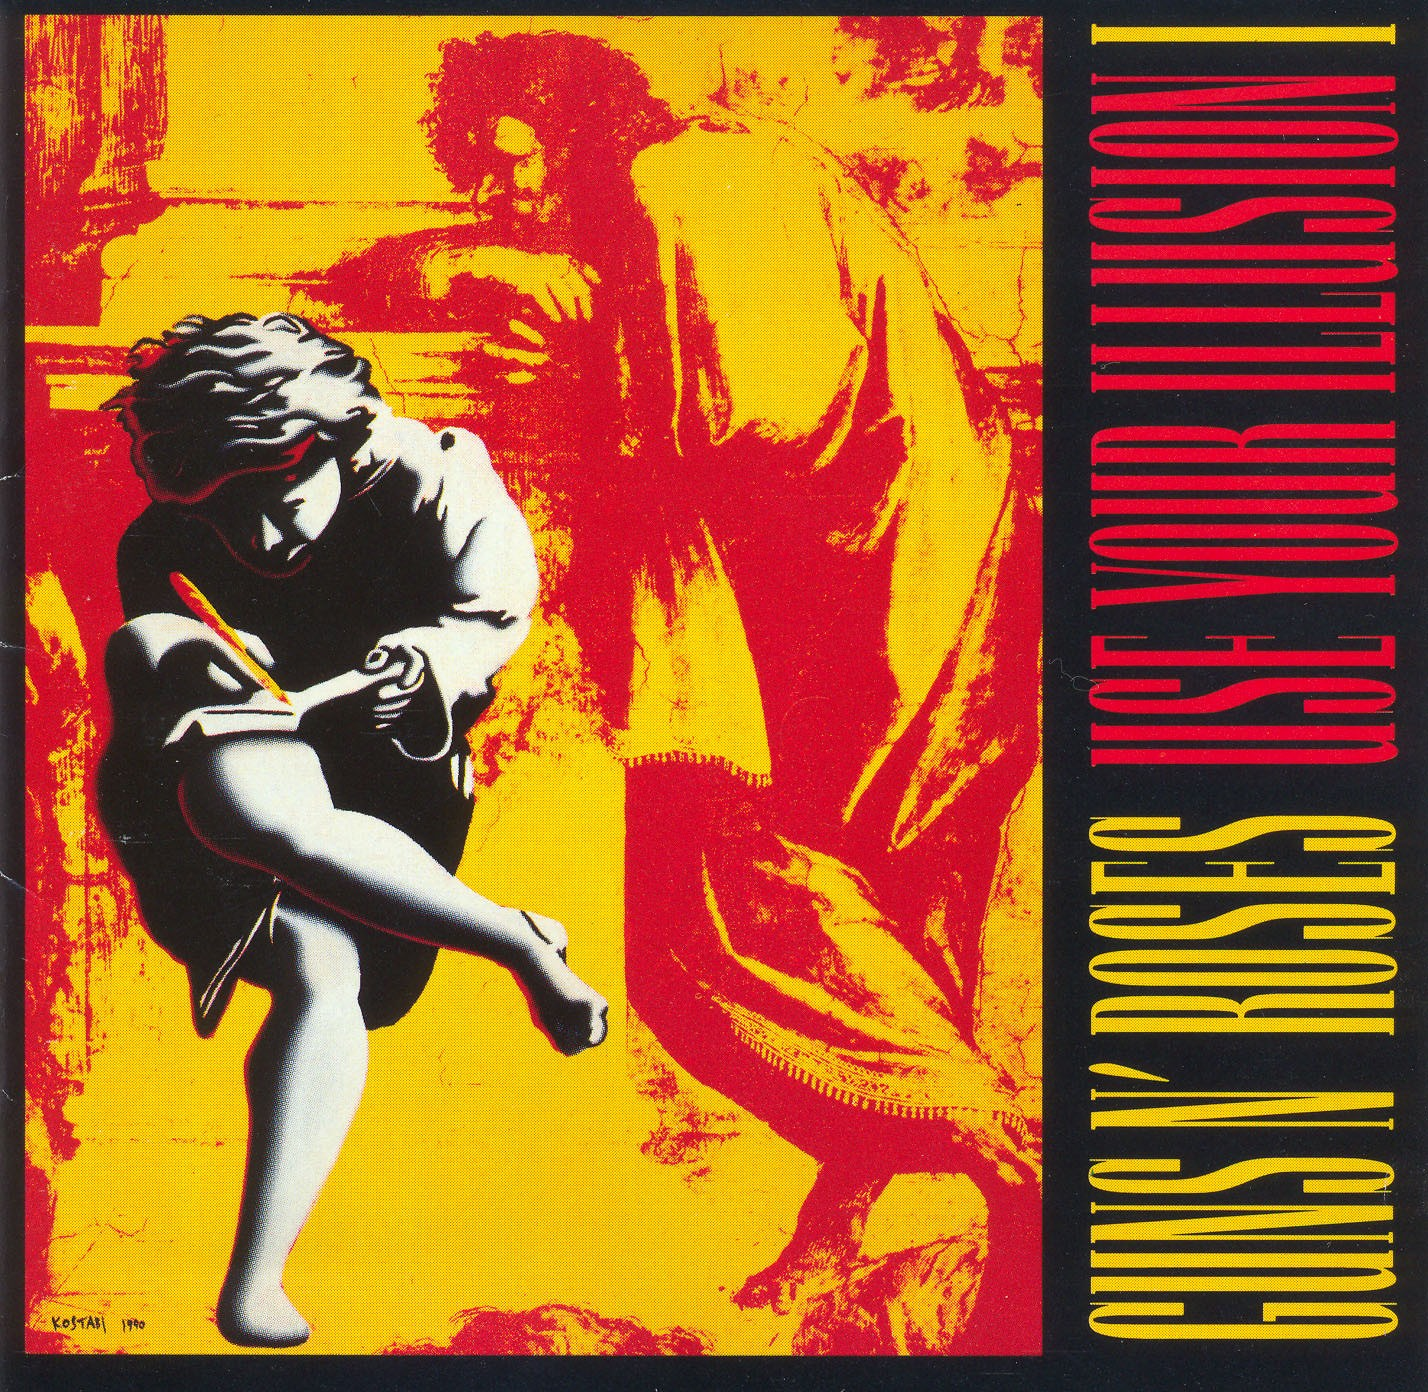 Use Your Illusions I Album Cover Raphael Guns N' Roses Painting School Of Athens